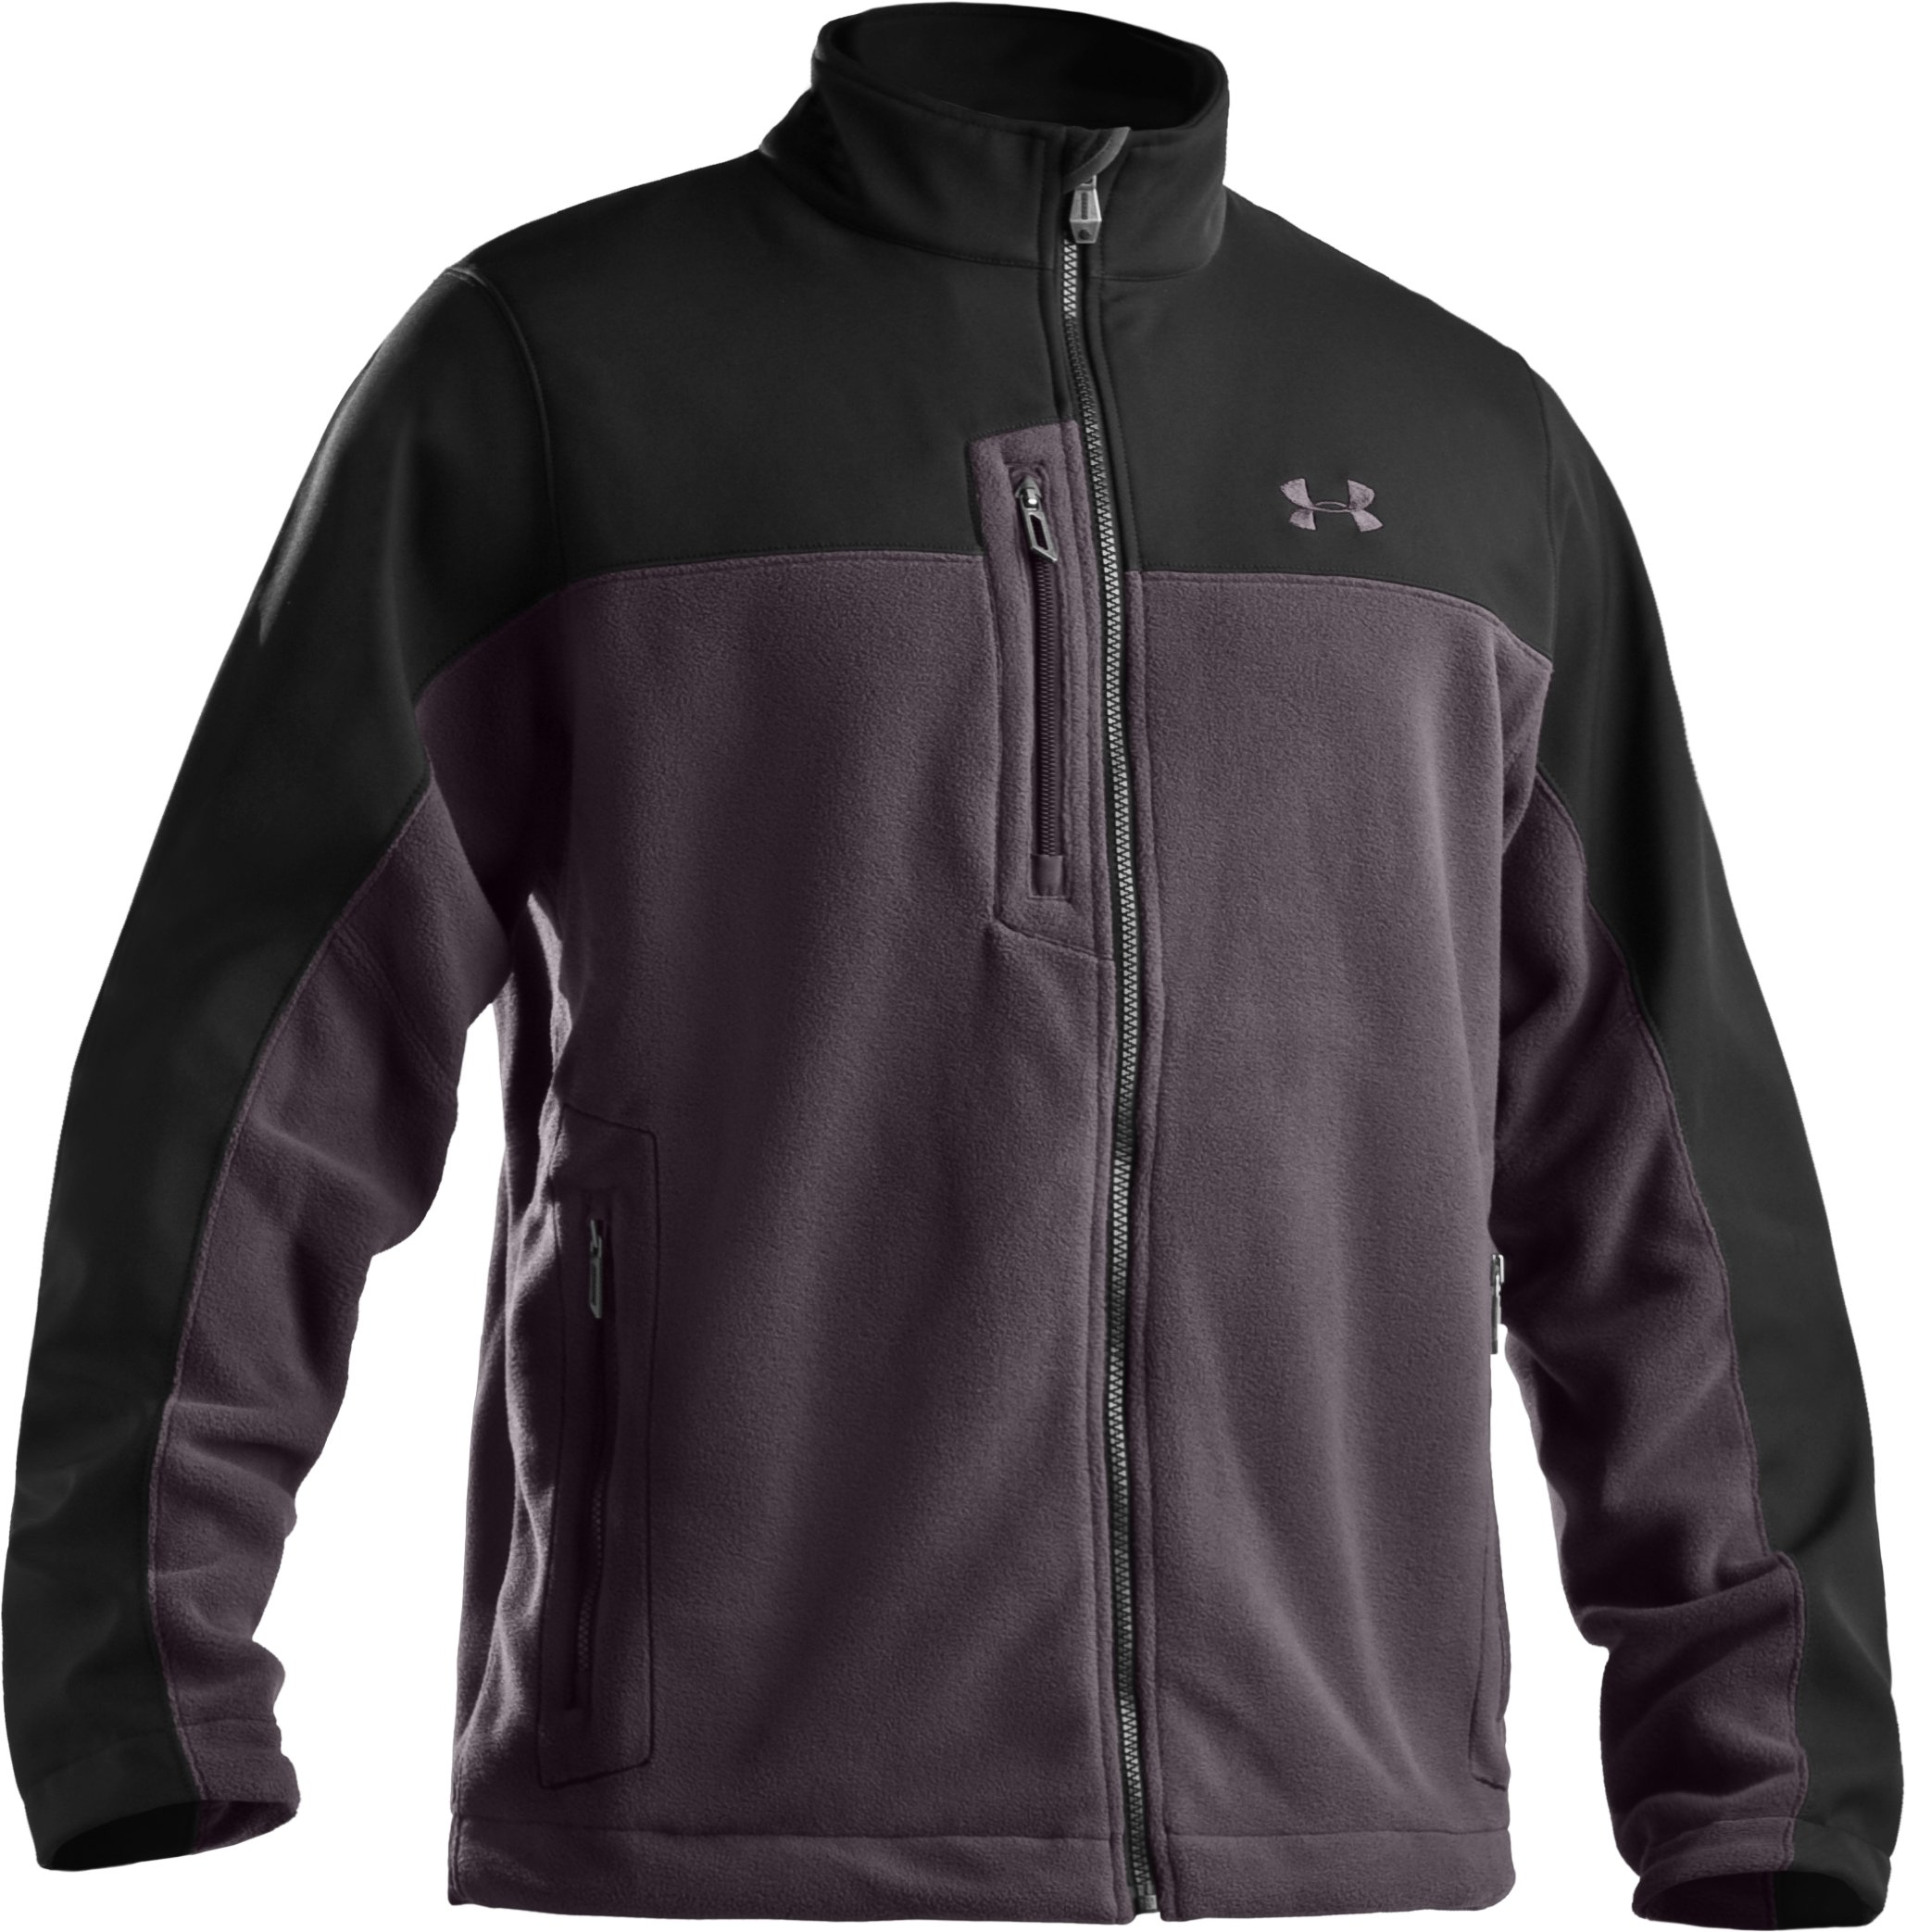 Men's Muroc Jacket, Black